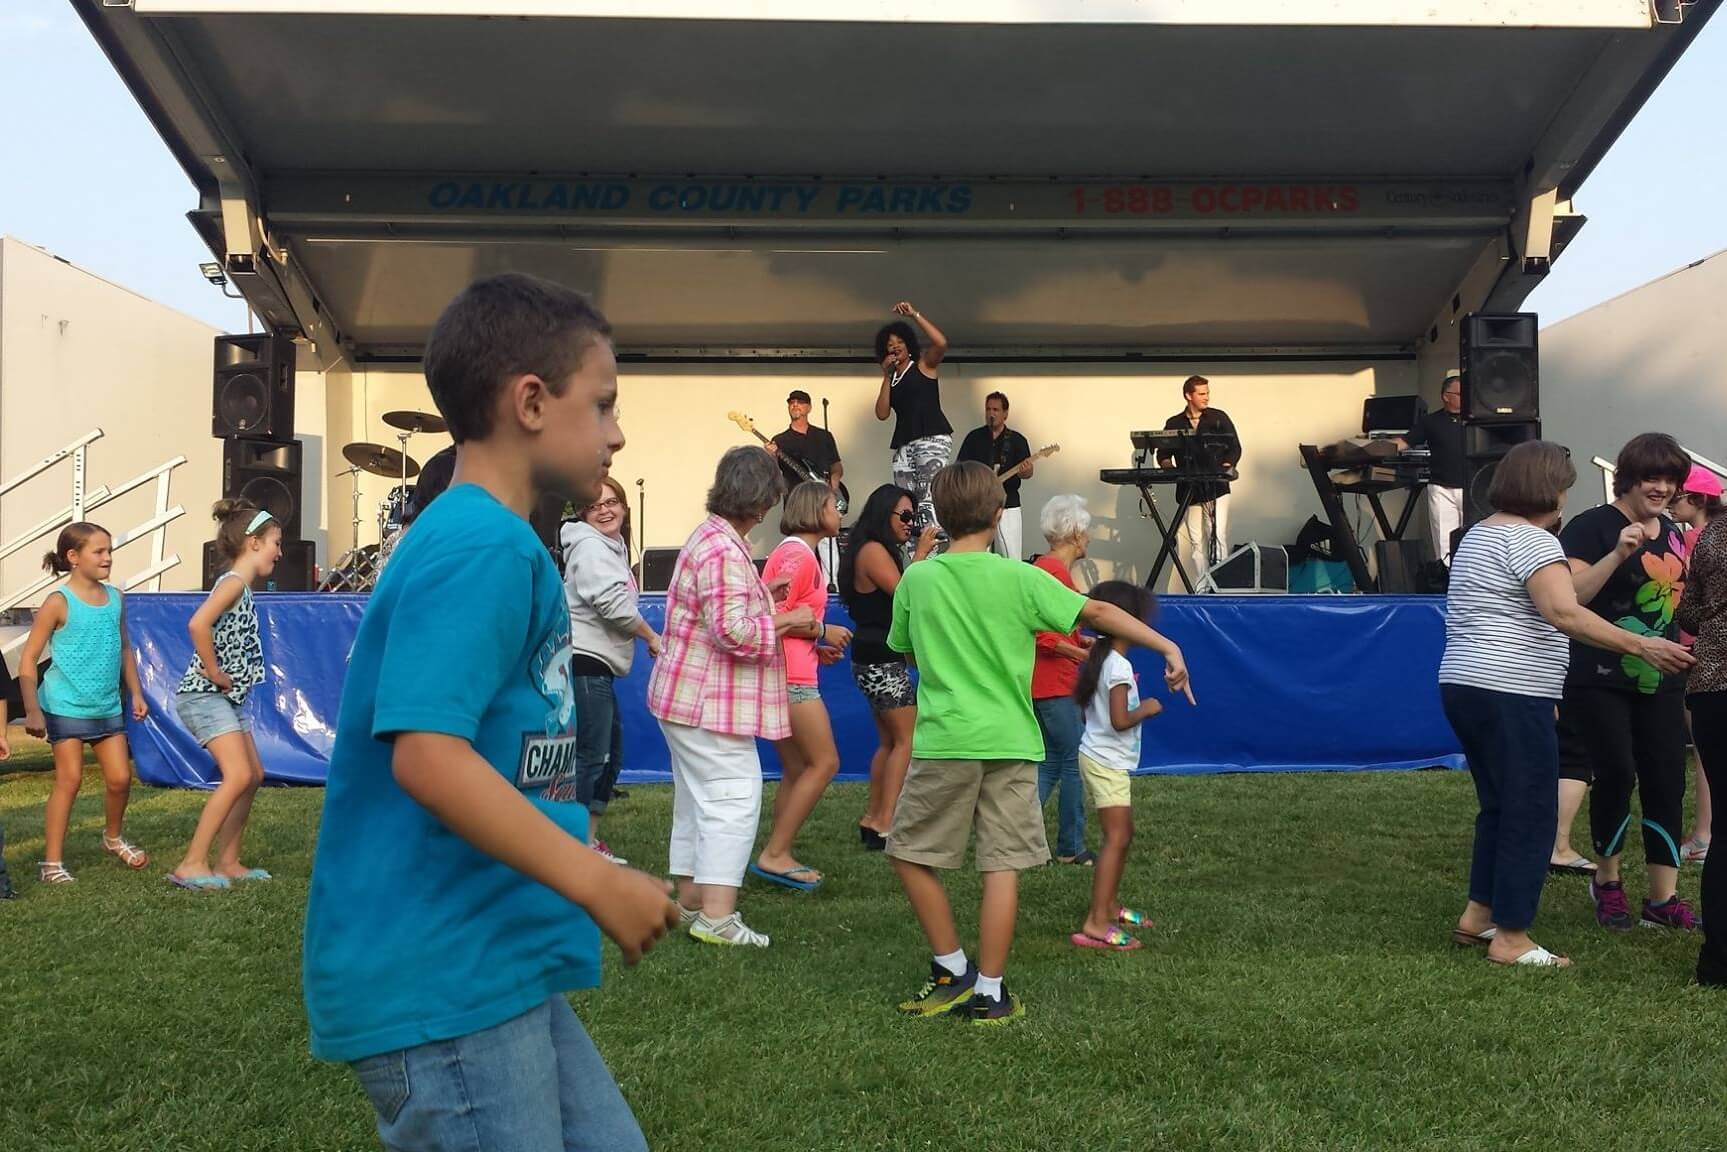 Summer Concert Series At The Amphitheater